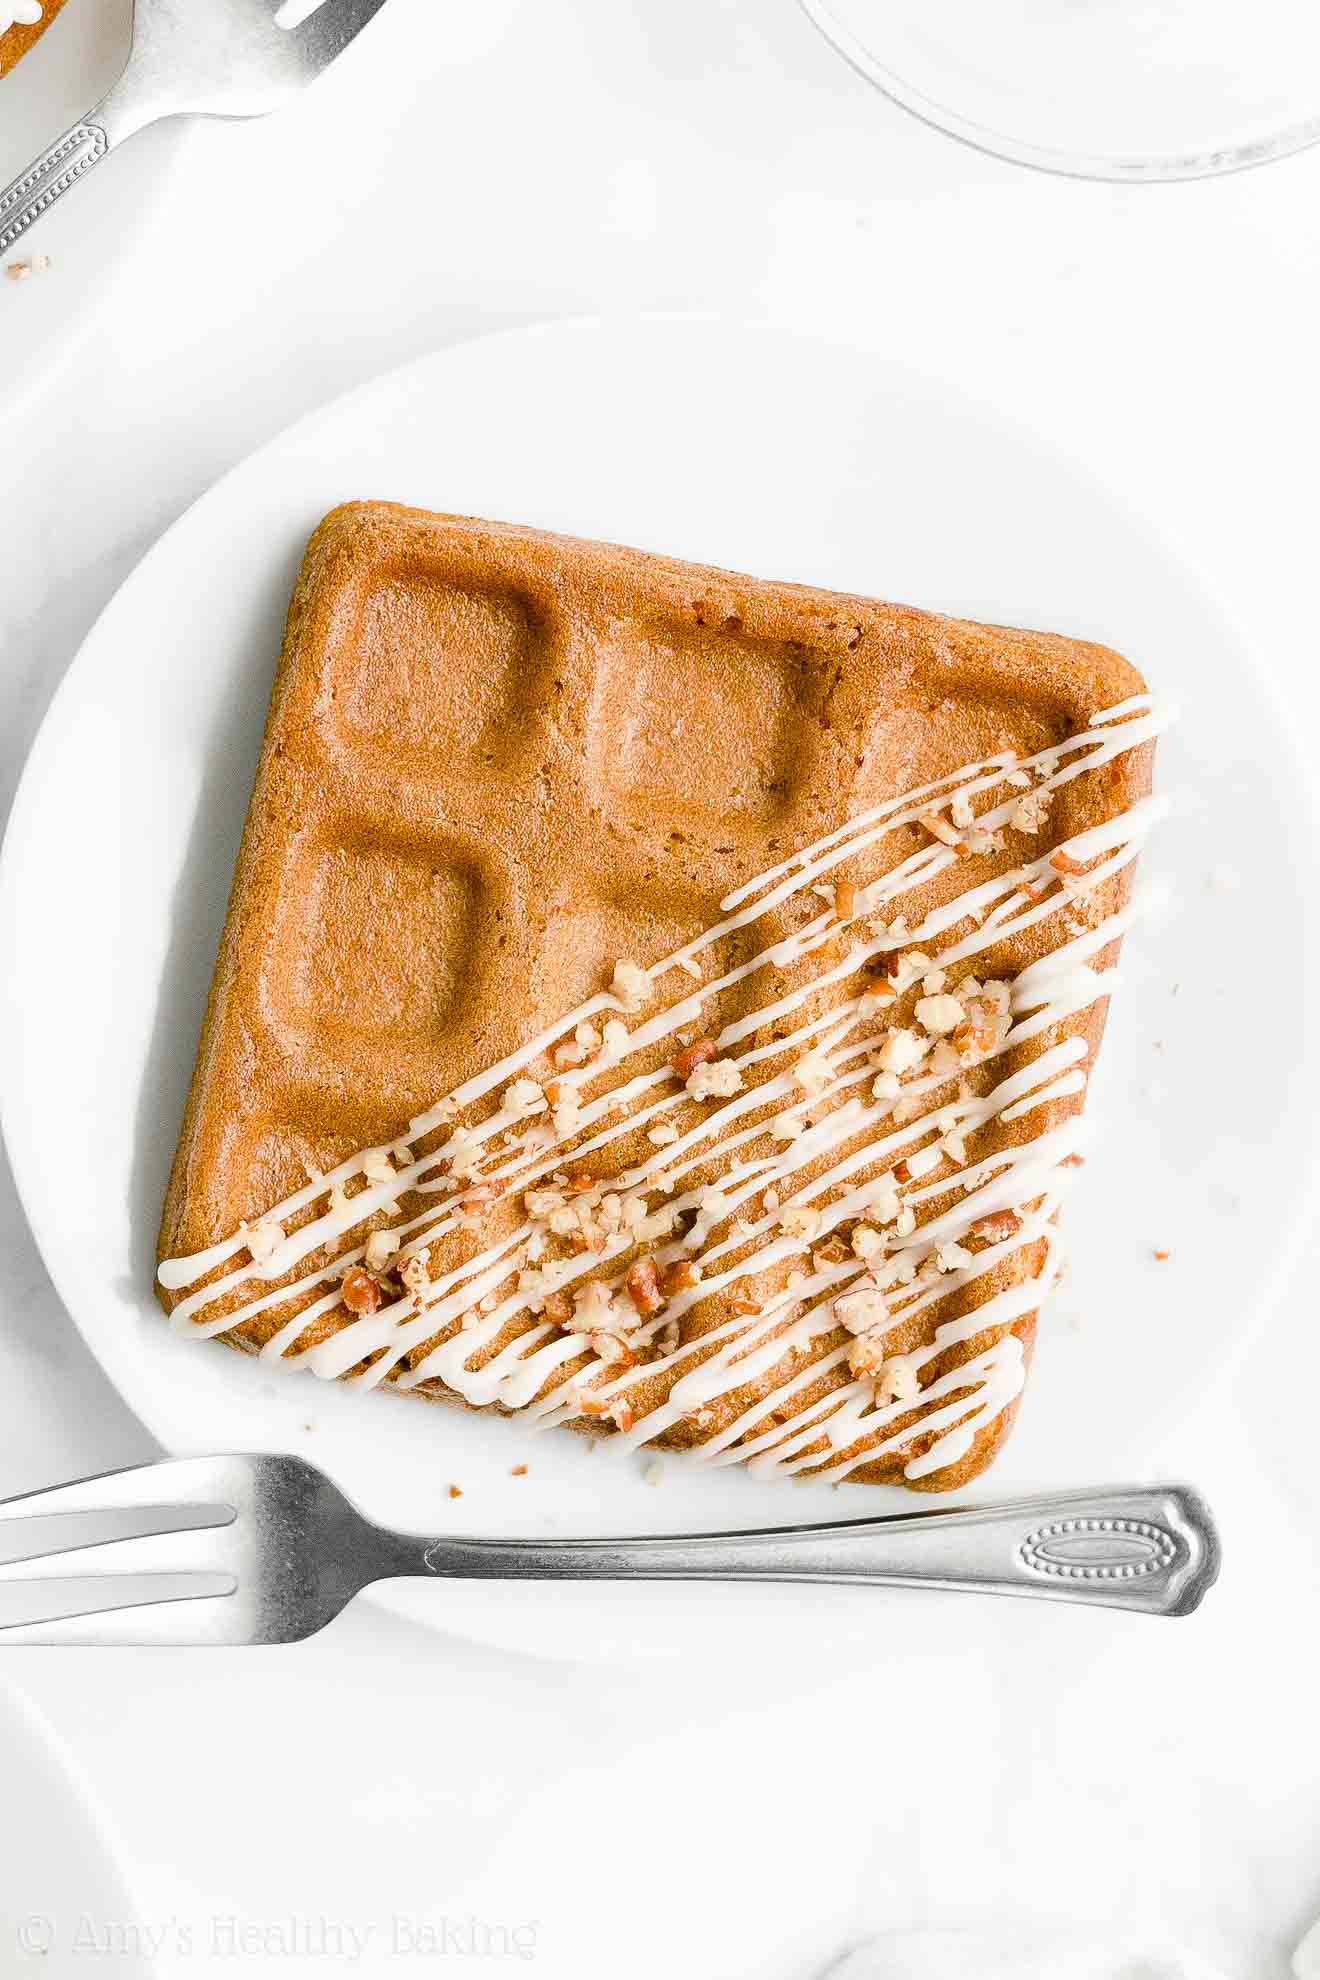 Best Easy Healthy Clean Eating Homemade Low Sugar Fluffy Carrot Cake Waffles